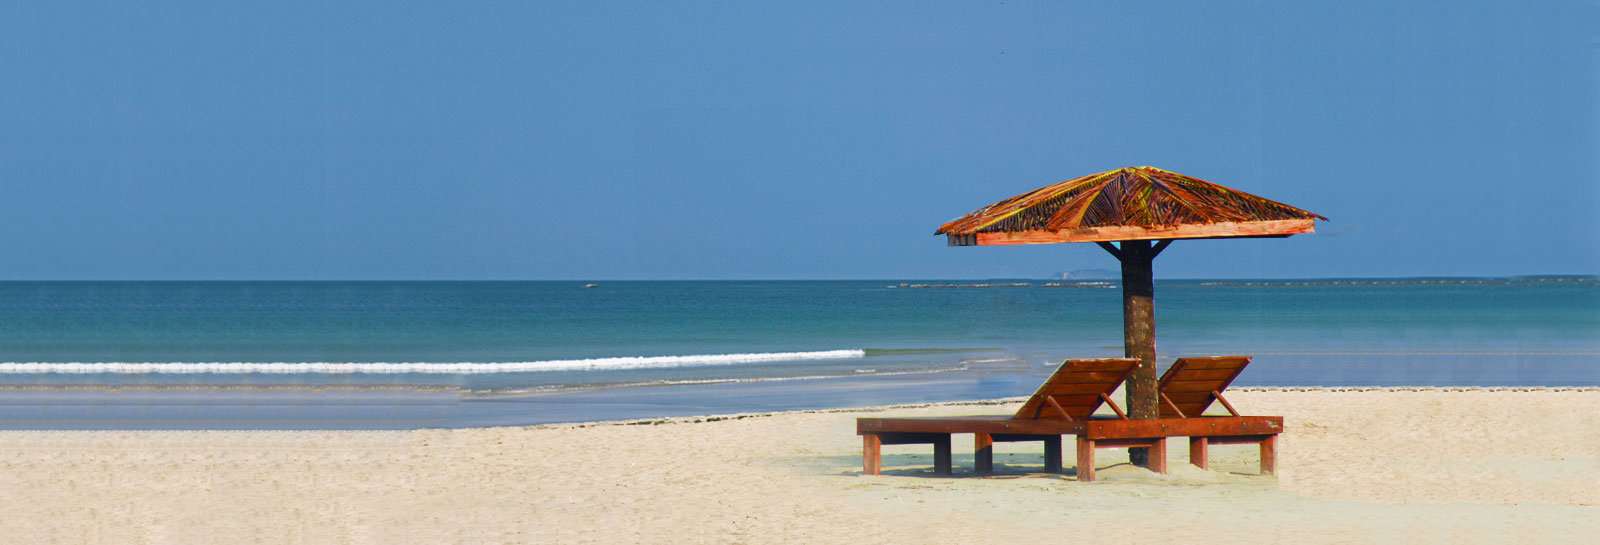 Best Beaches In Asia without the Crowds